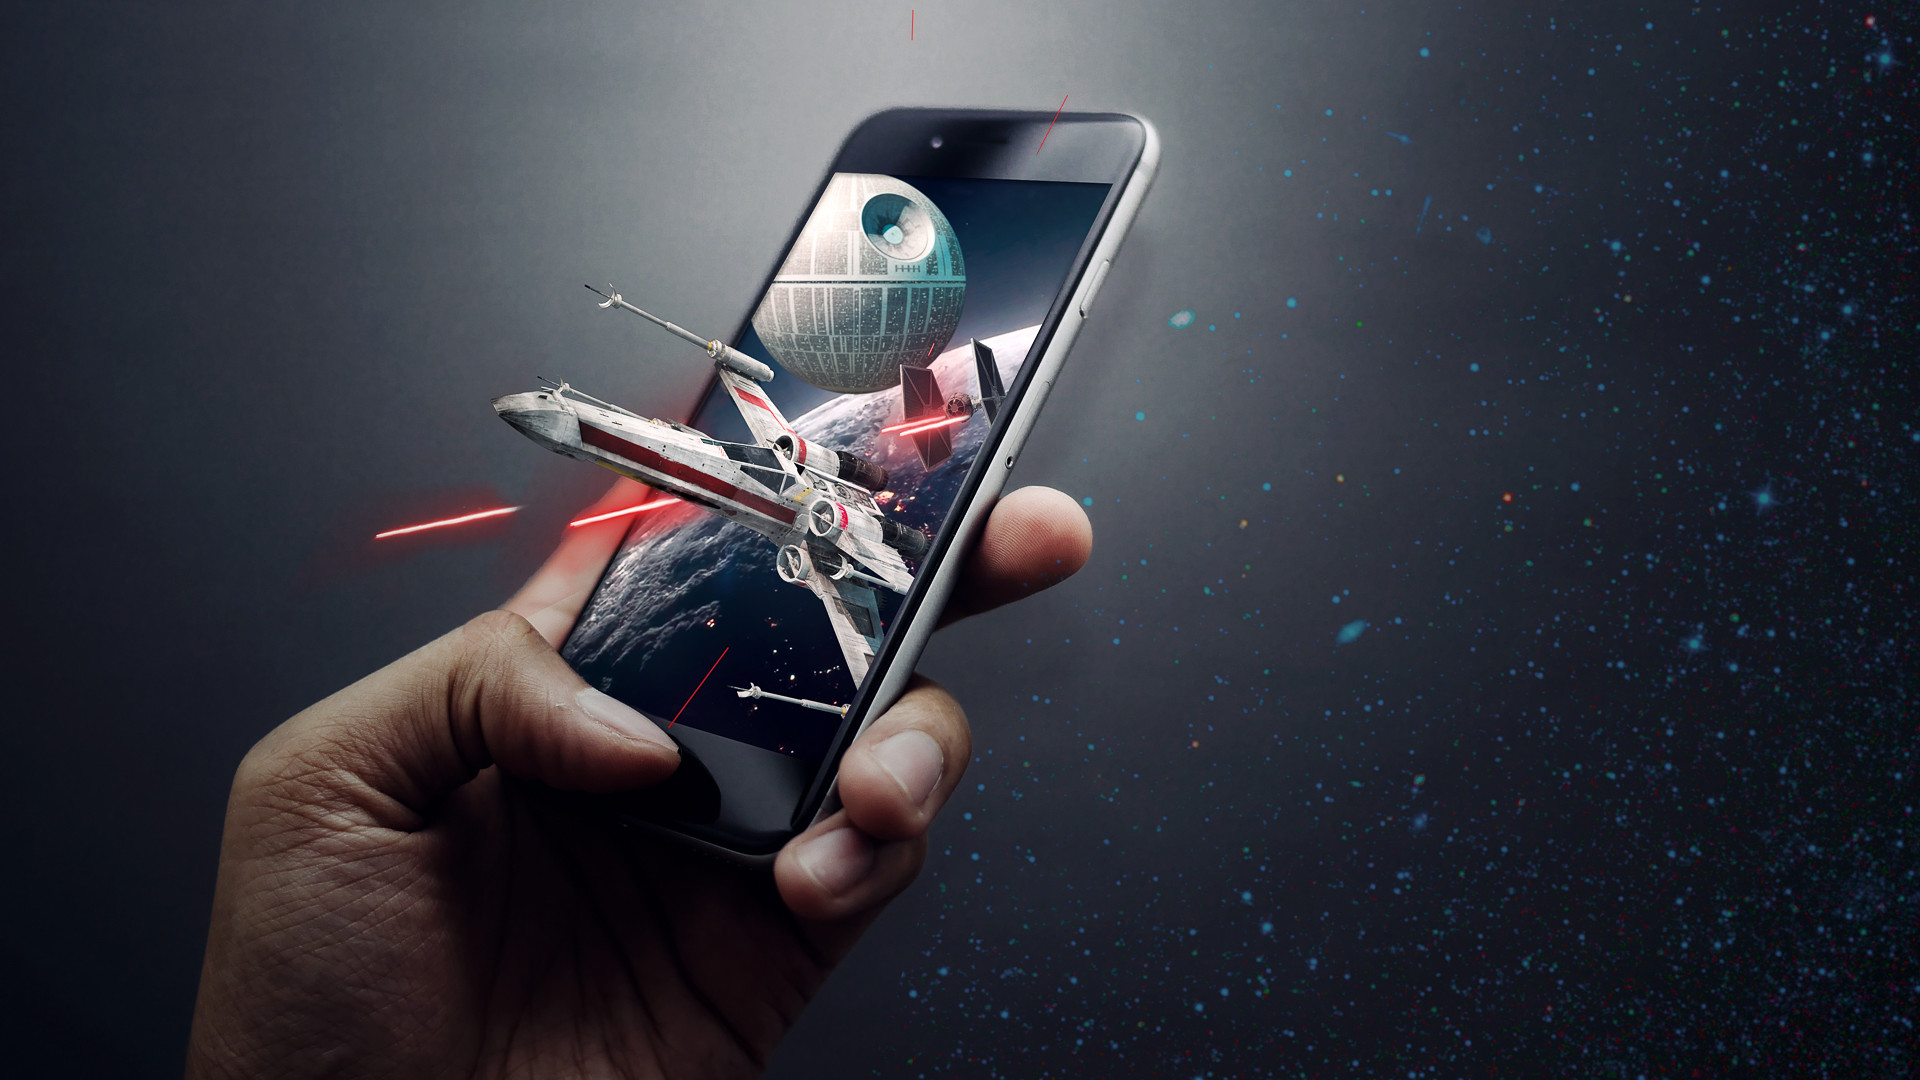 A hand holding a phone as star wars spaceships burst from the screen in this advertising photo inspired by Lucas Arts and created by Dillon Vance Photo